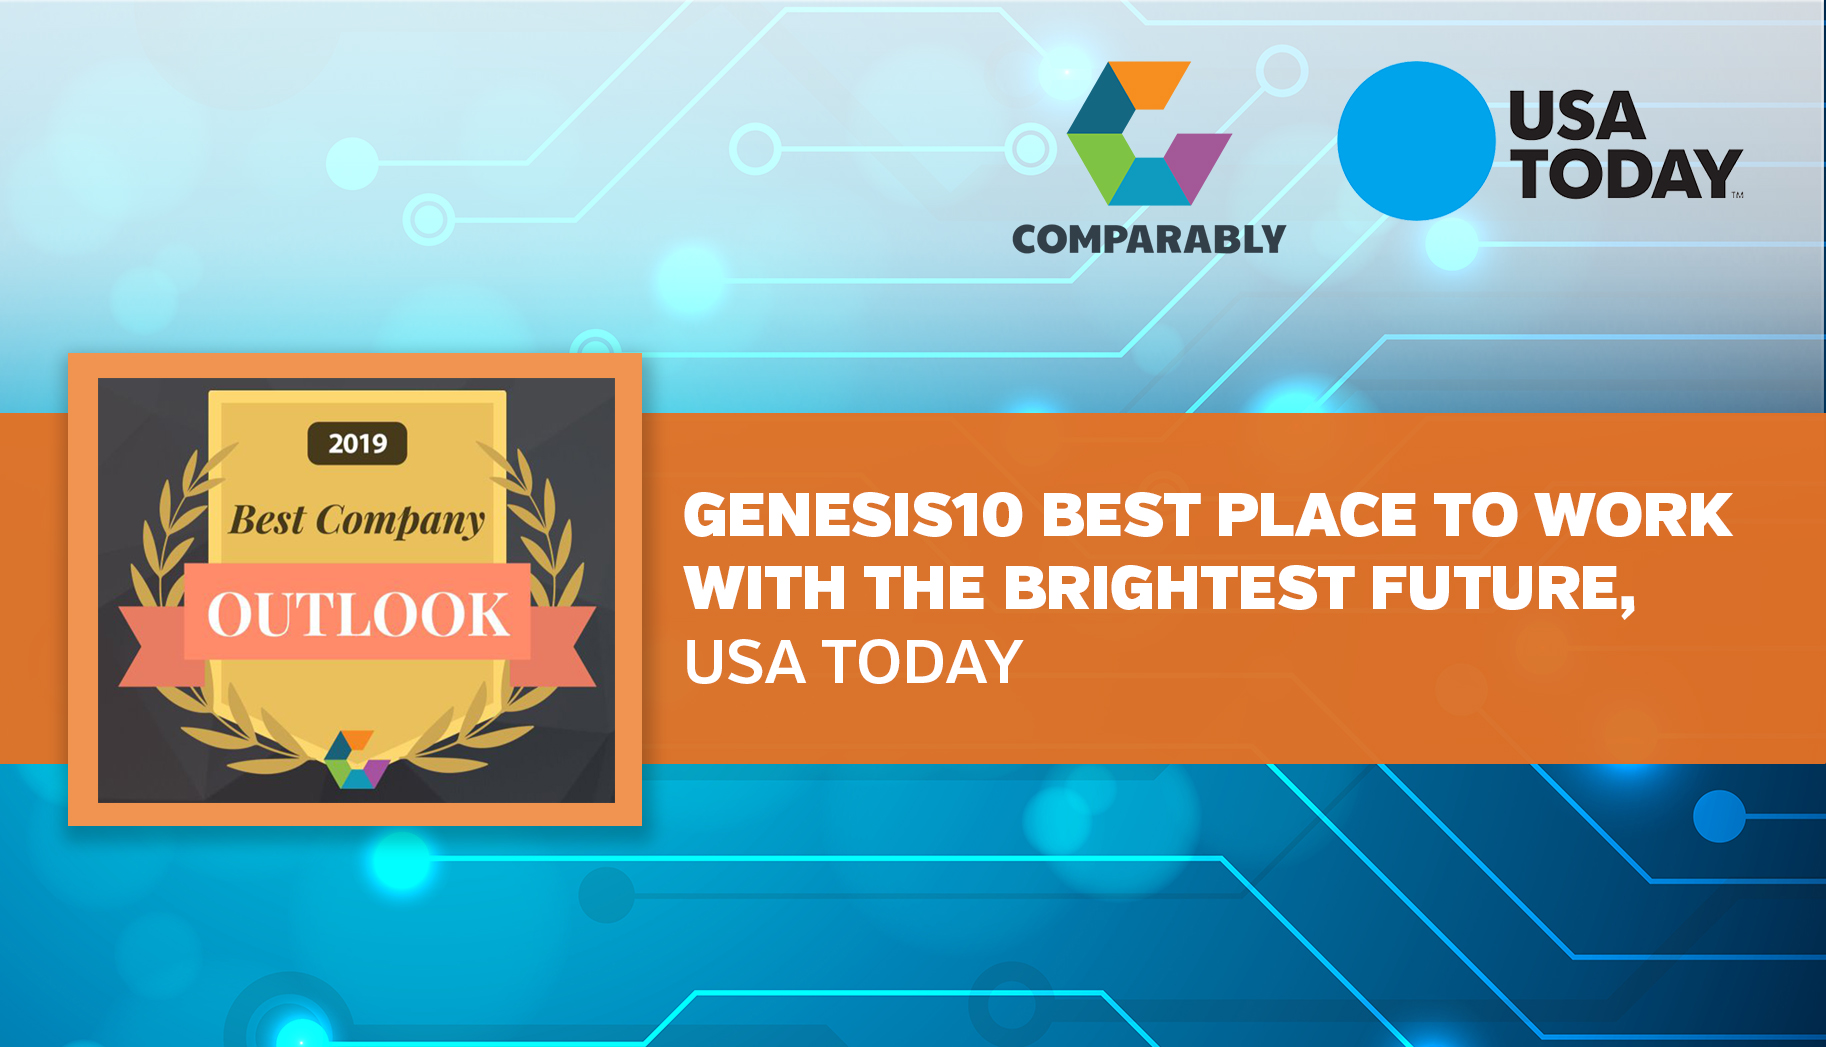 LinkedIn__Genesis10 Best Place to Work with the Brightest Future, USA Today